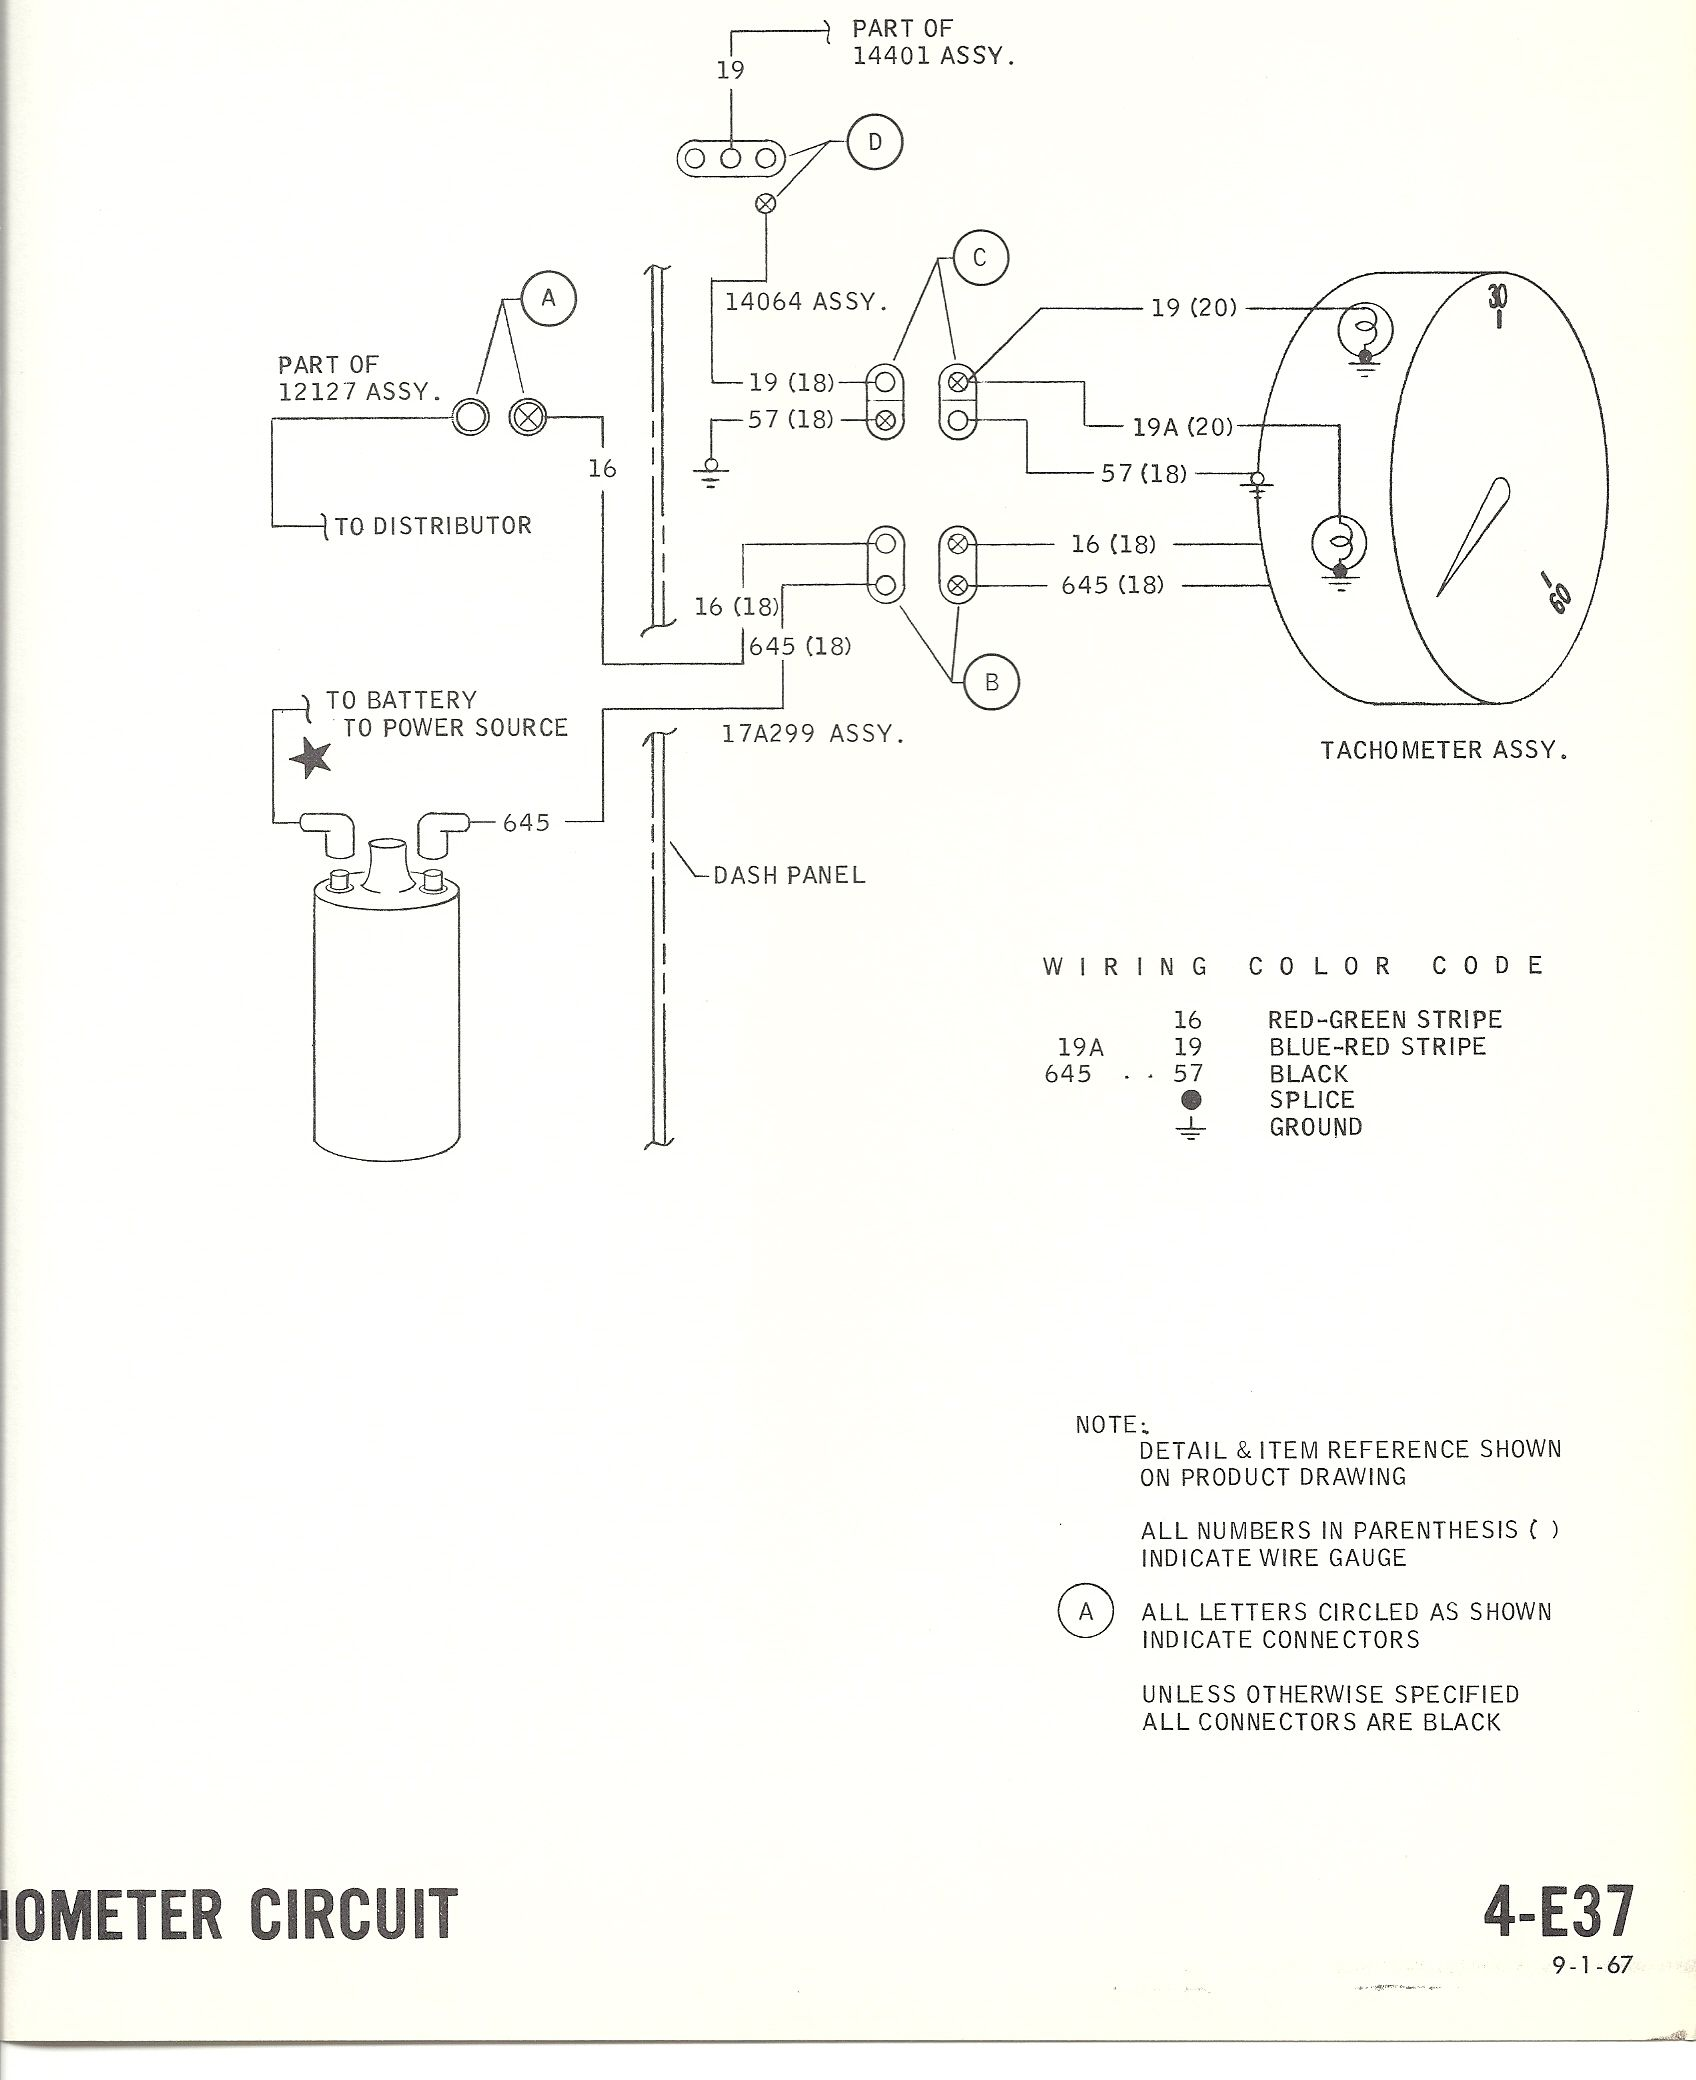 2b2f8e488a4c6a6b870c00f5af30de6c 1967 mustang wiring to tachometer 1968 mustang wiring 2007 Mustang Wiring Diagram at love-stories.co